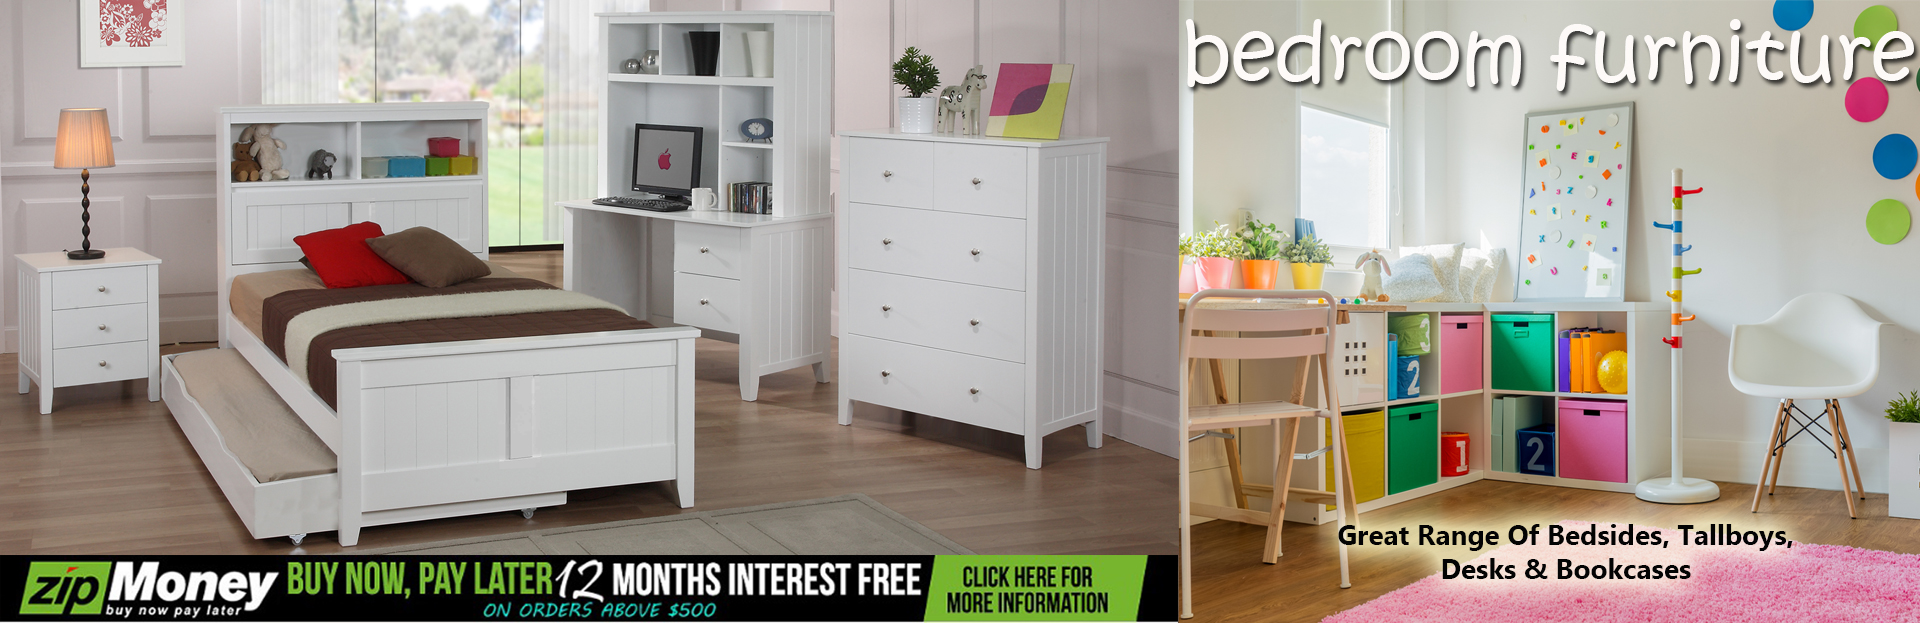 bedroom-furniture-banner.jpg